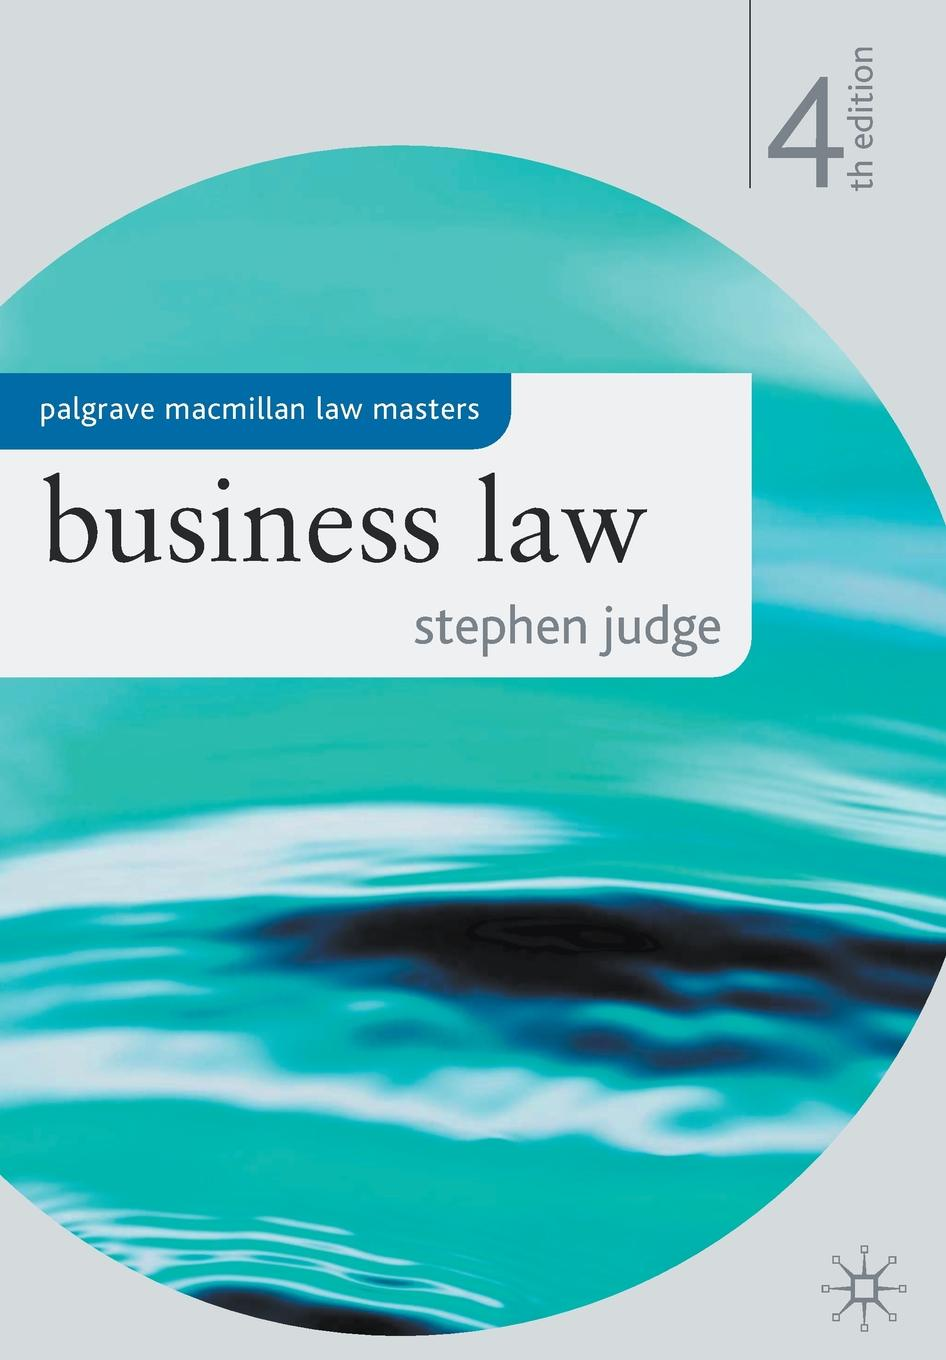 Stephen Judge Business Law clifford chane russian business law compendium 3